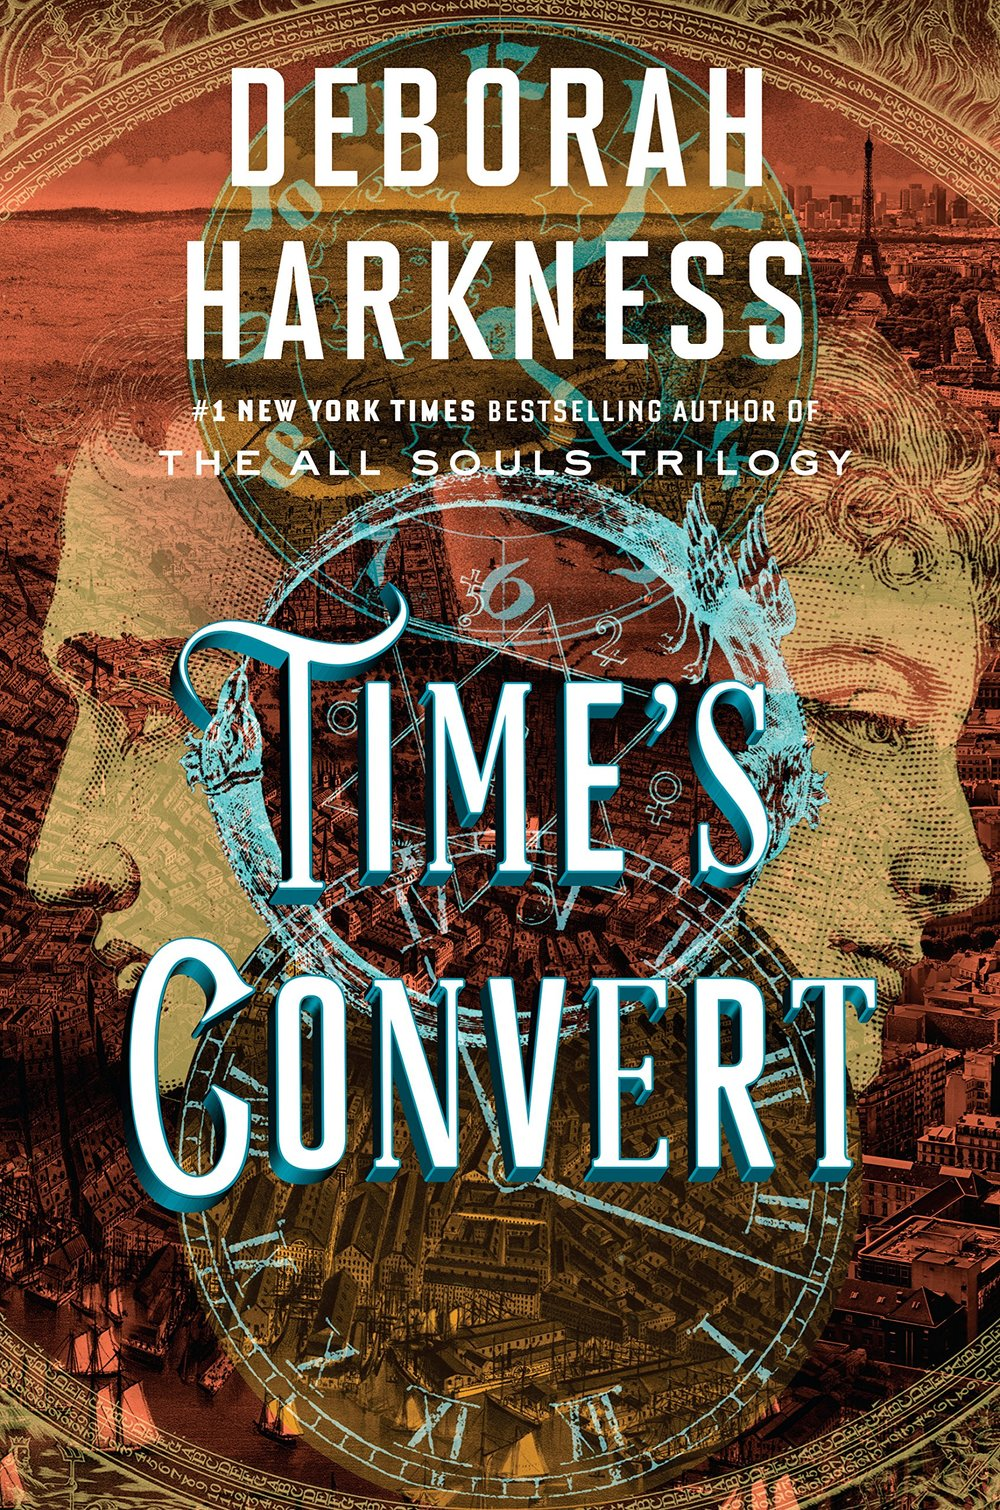 TIME'S CONVERT by Deborah Harkness   From the #1  New York Times  bestselling author, Deborah Harkness comes a passionate love story and exploration of the power of tradition and the possibilities for revolution. On the battlefields of the American Revolution, Matthew de Clermont meets Marcus MacNeil, a young surgeon, who offers Matthew a chance at immortality by becoming a vampire. Now, in contemporary Paris Phoebe Taylor--the young employee at Sotheby's whom Marcus has fallen for--is about to embark on her own journey to immortality. Though the modernized version of the process seems uncomplicated, the couple discovers that the shadows Marcus believed he had escaped centuries ago may return to haunt them both—forever.